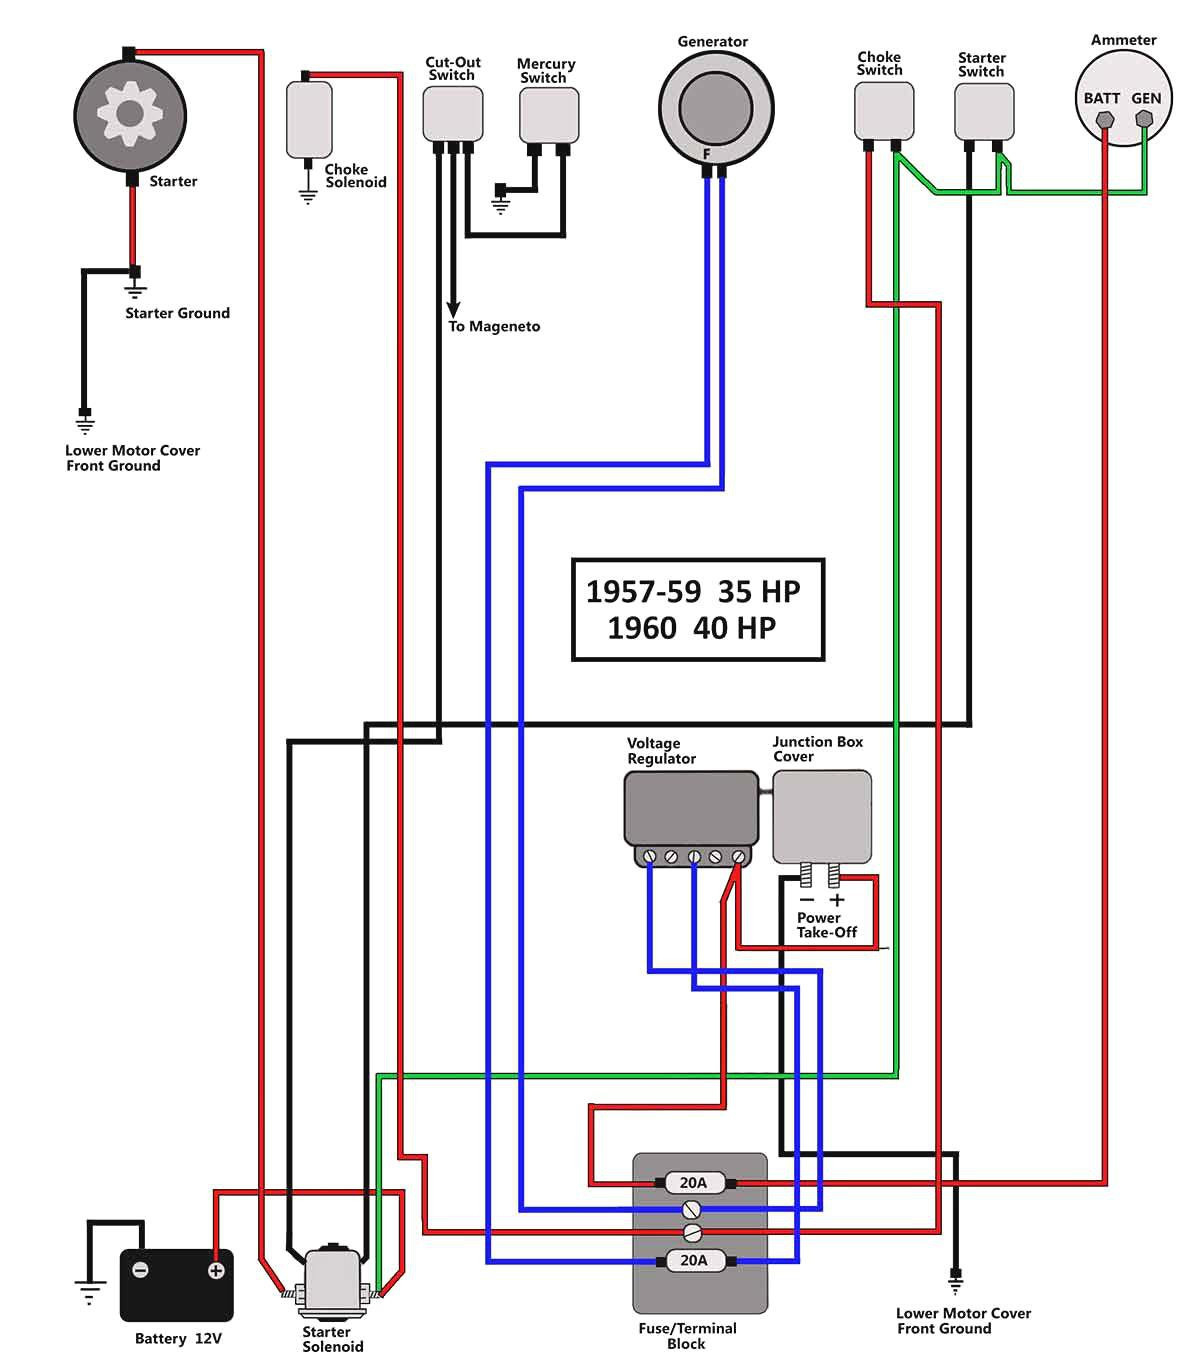 50 hp mercury outboard wiring diagram collection wiring diagram for a pull cord light switch wiring diagram for a mercury outboard ignition switch